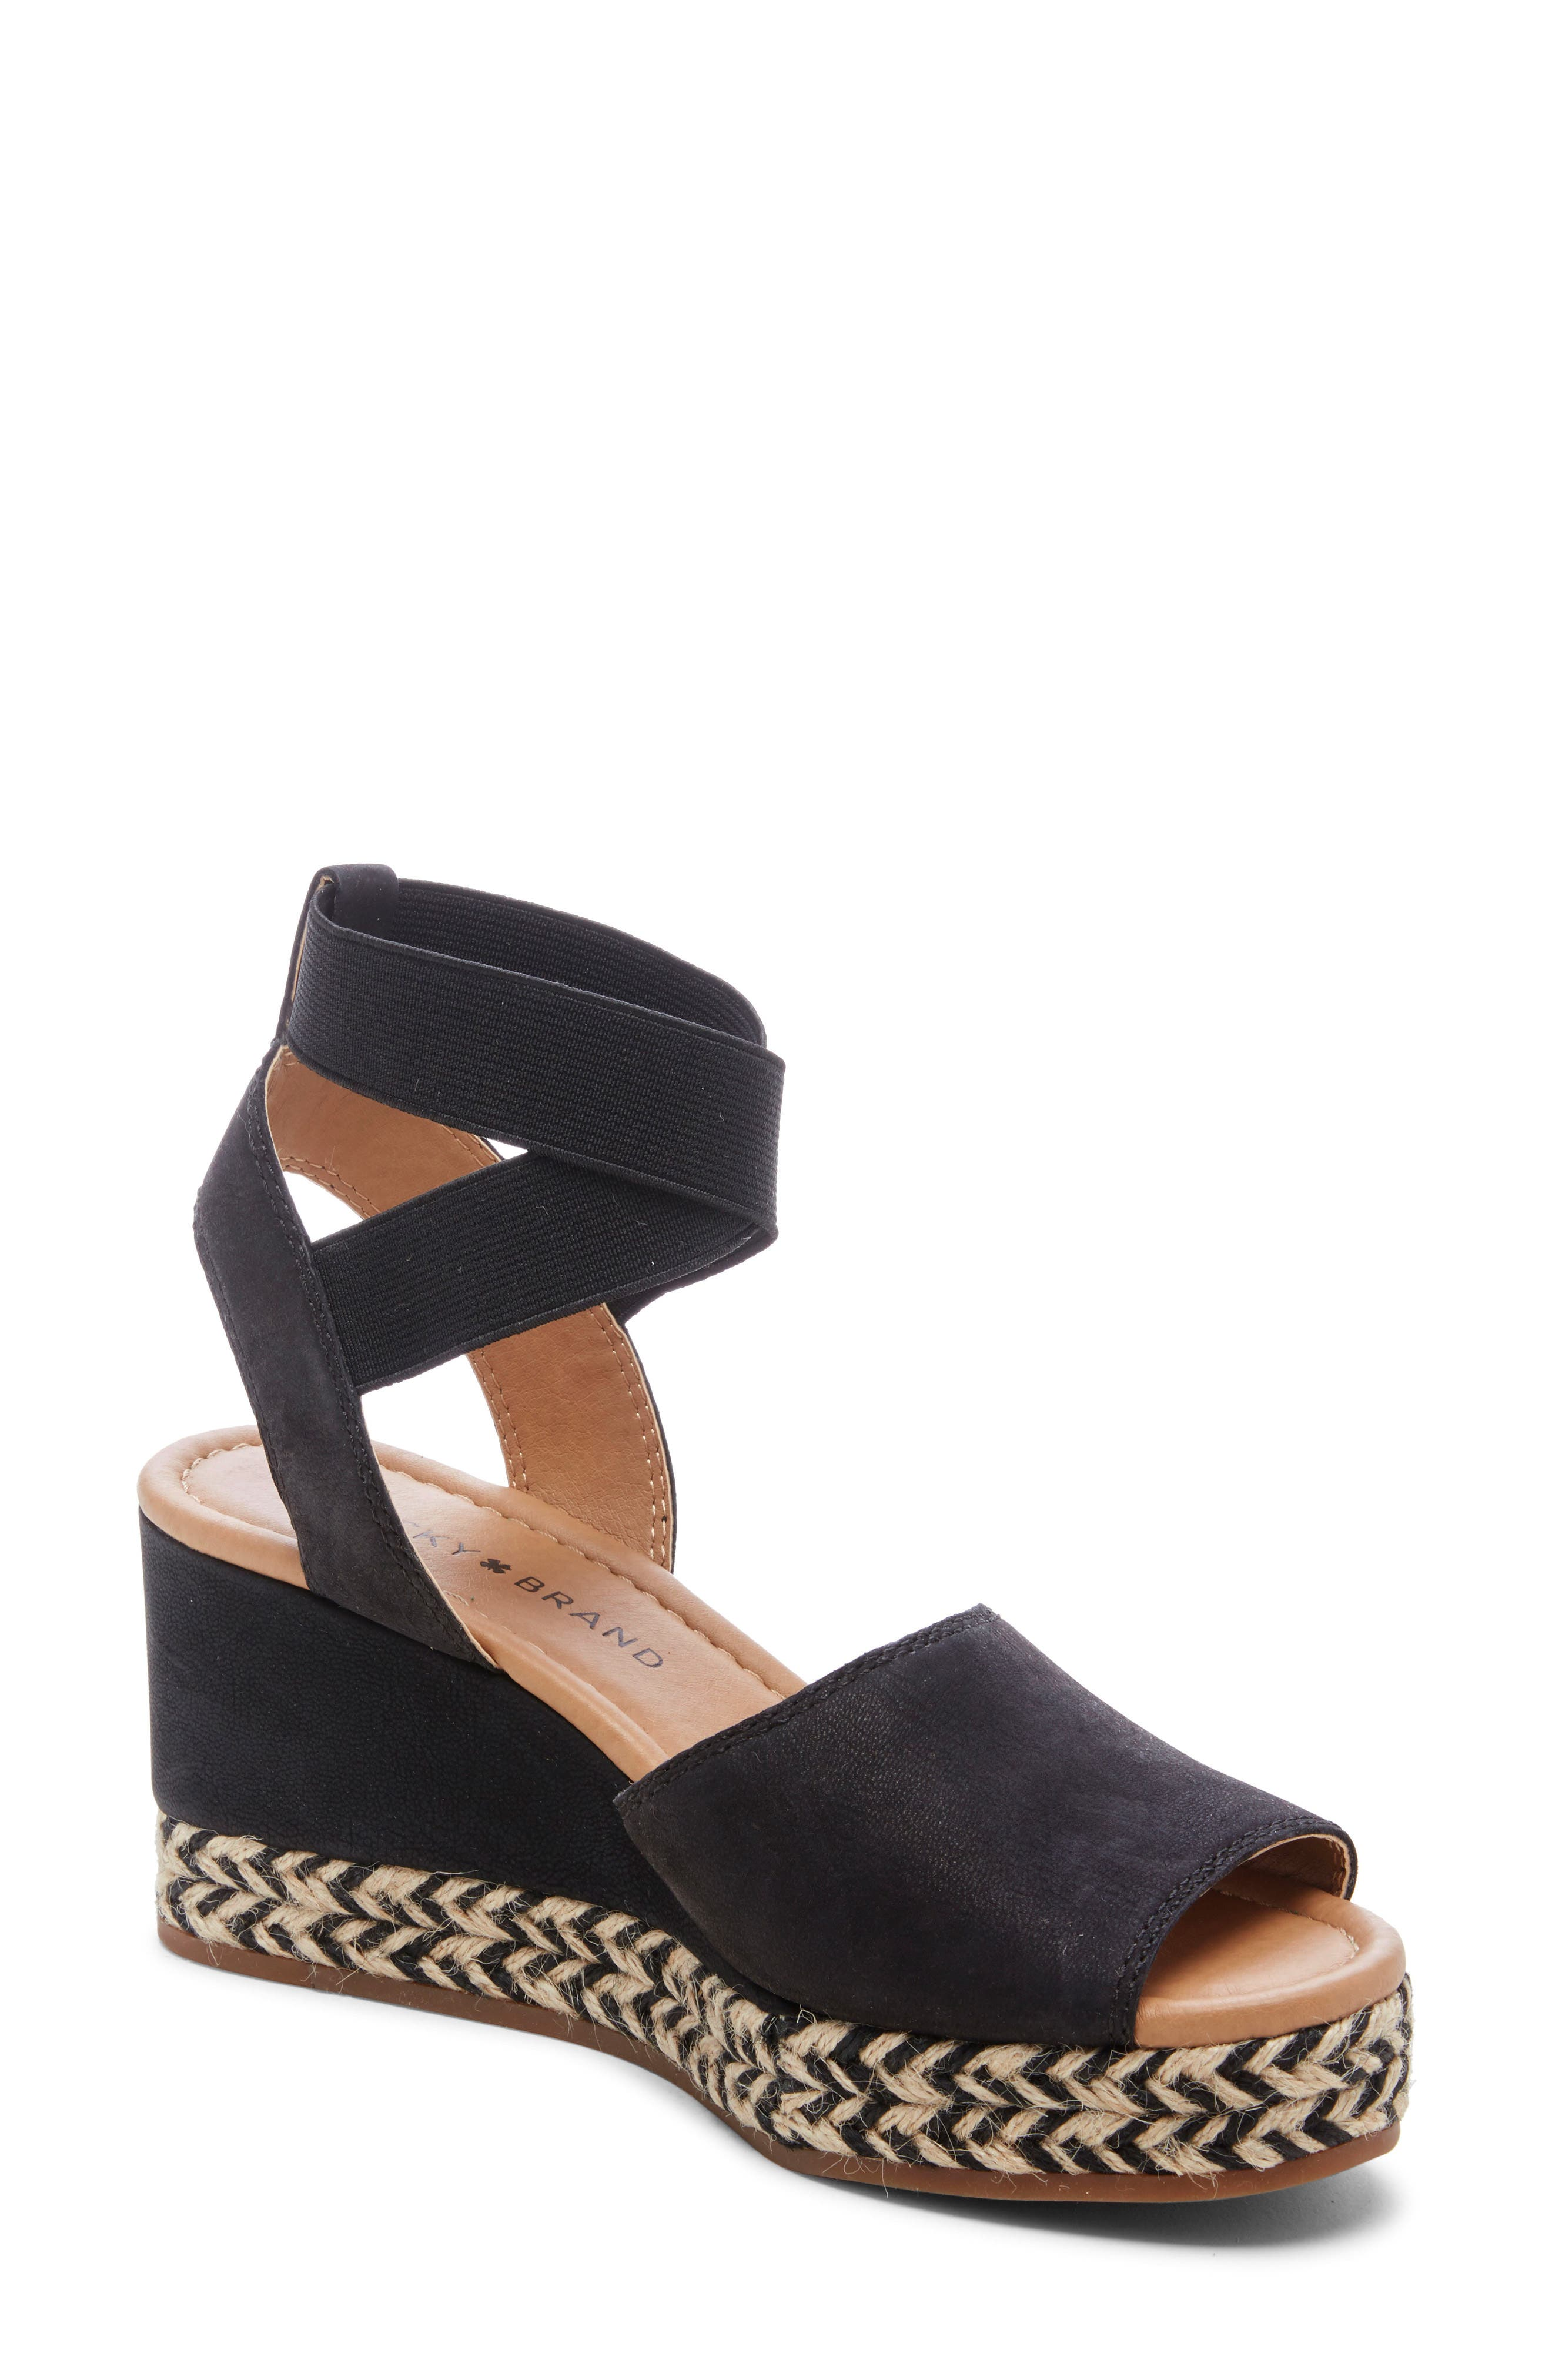 Lucky Brand Bettanie Espadrille Wedge Sandal- Black